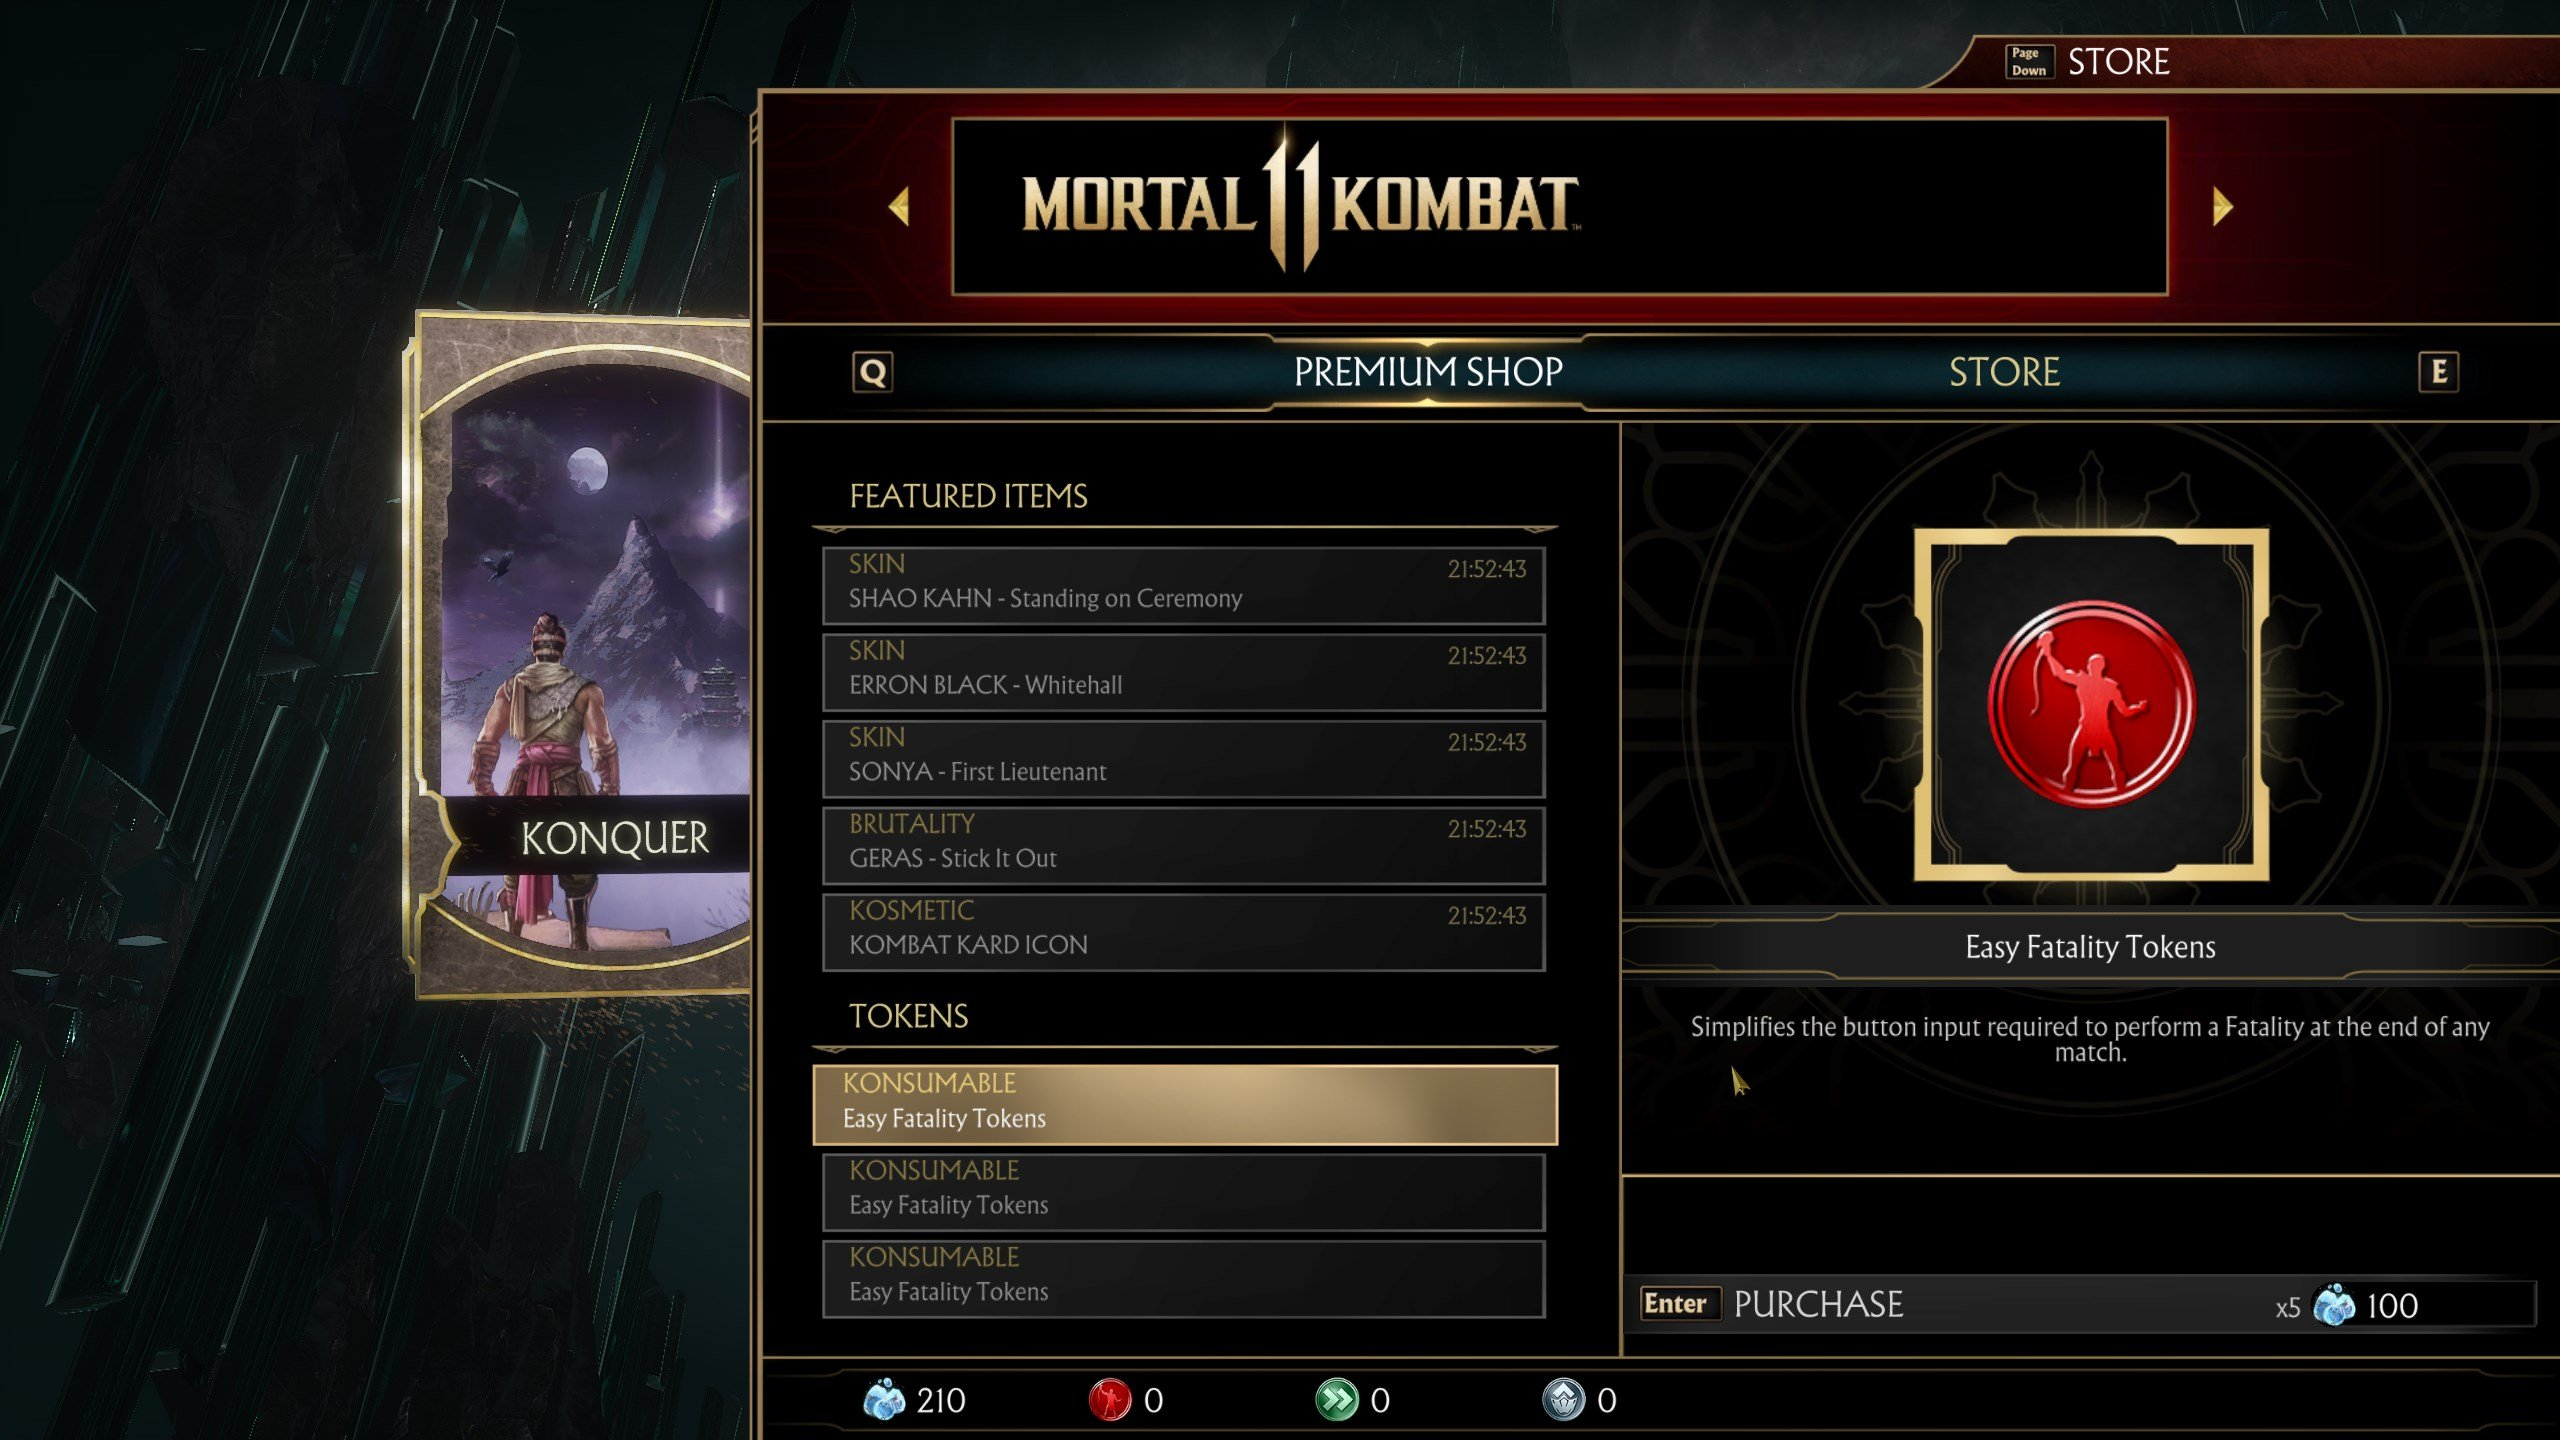 How to get more Easy Fatality Tokens in Mortal Kombat 11